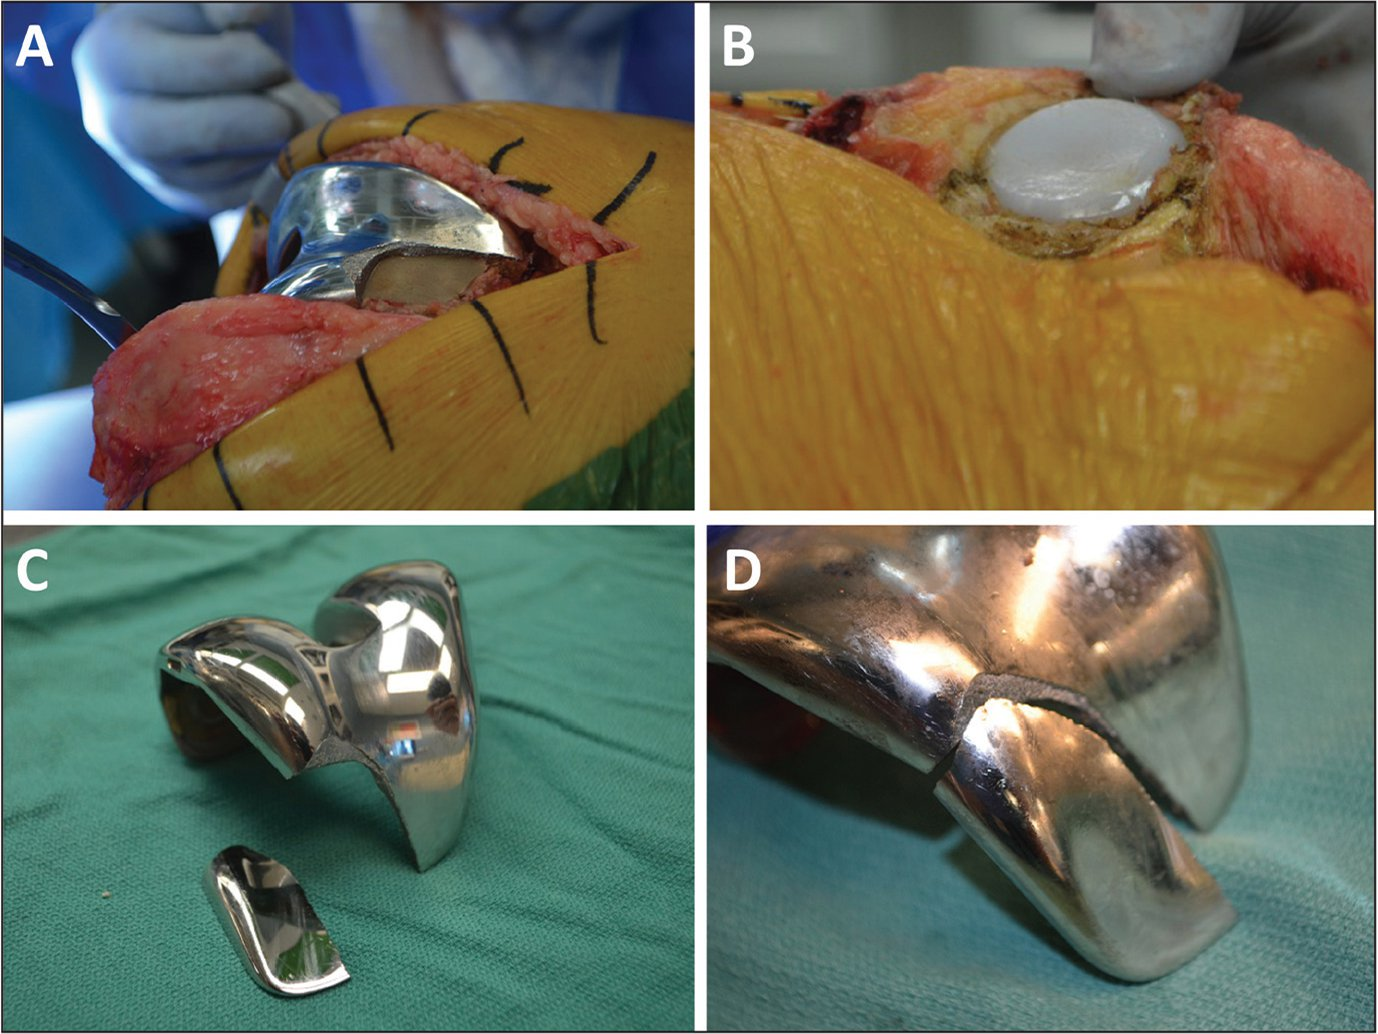 Anterolateral view of the fractured femoral anterior flange (A), patellar component with significant central lateral wear (B), and explanted femoral component with retrieved metal fragment (C, D).